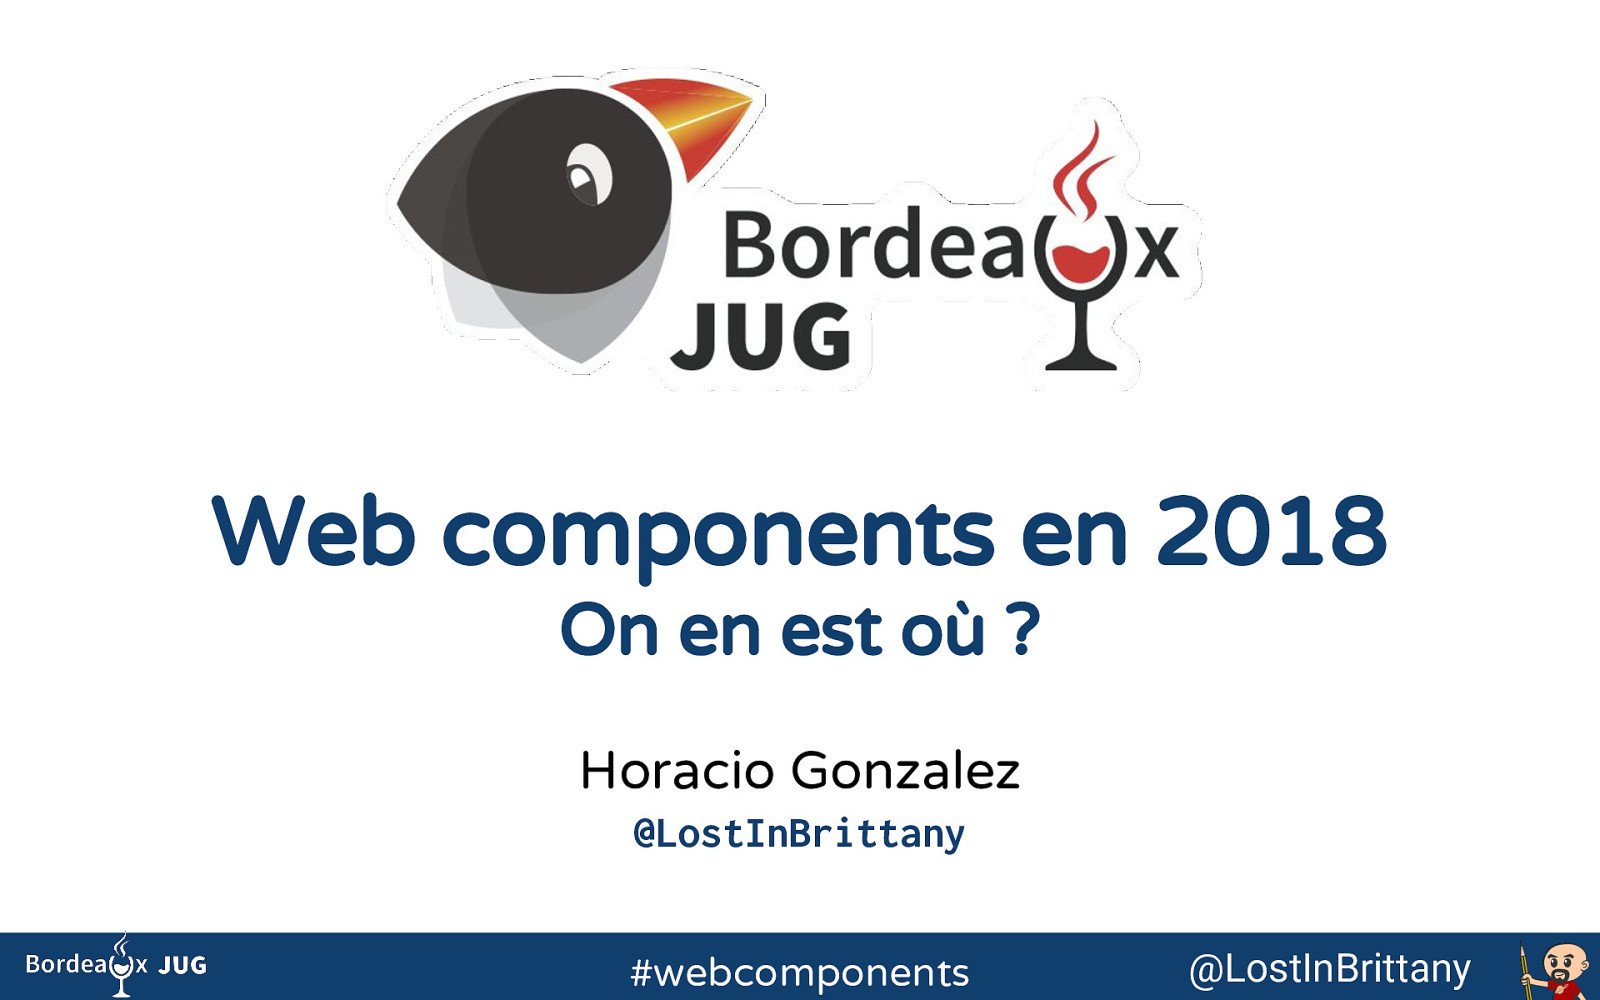 Web components en 2018, on en est où?